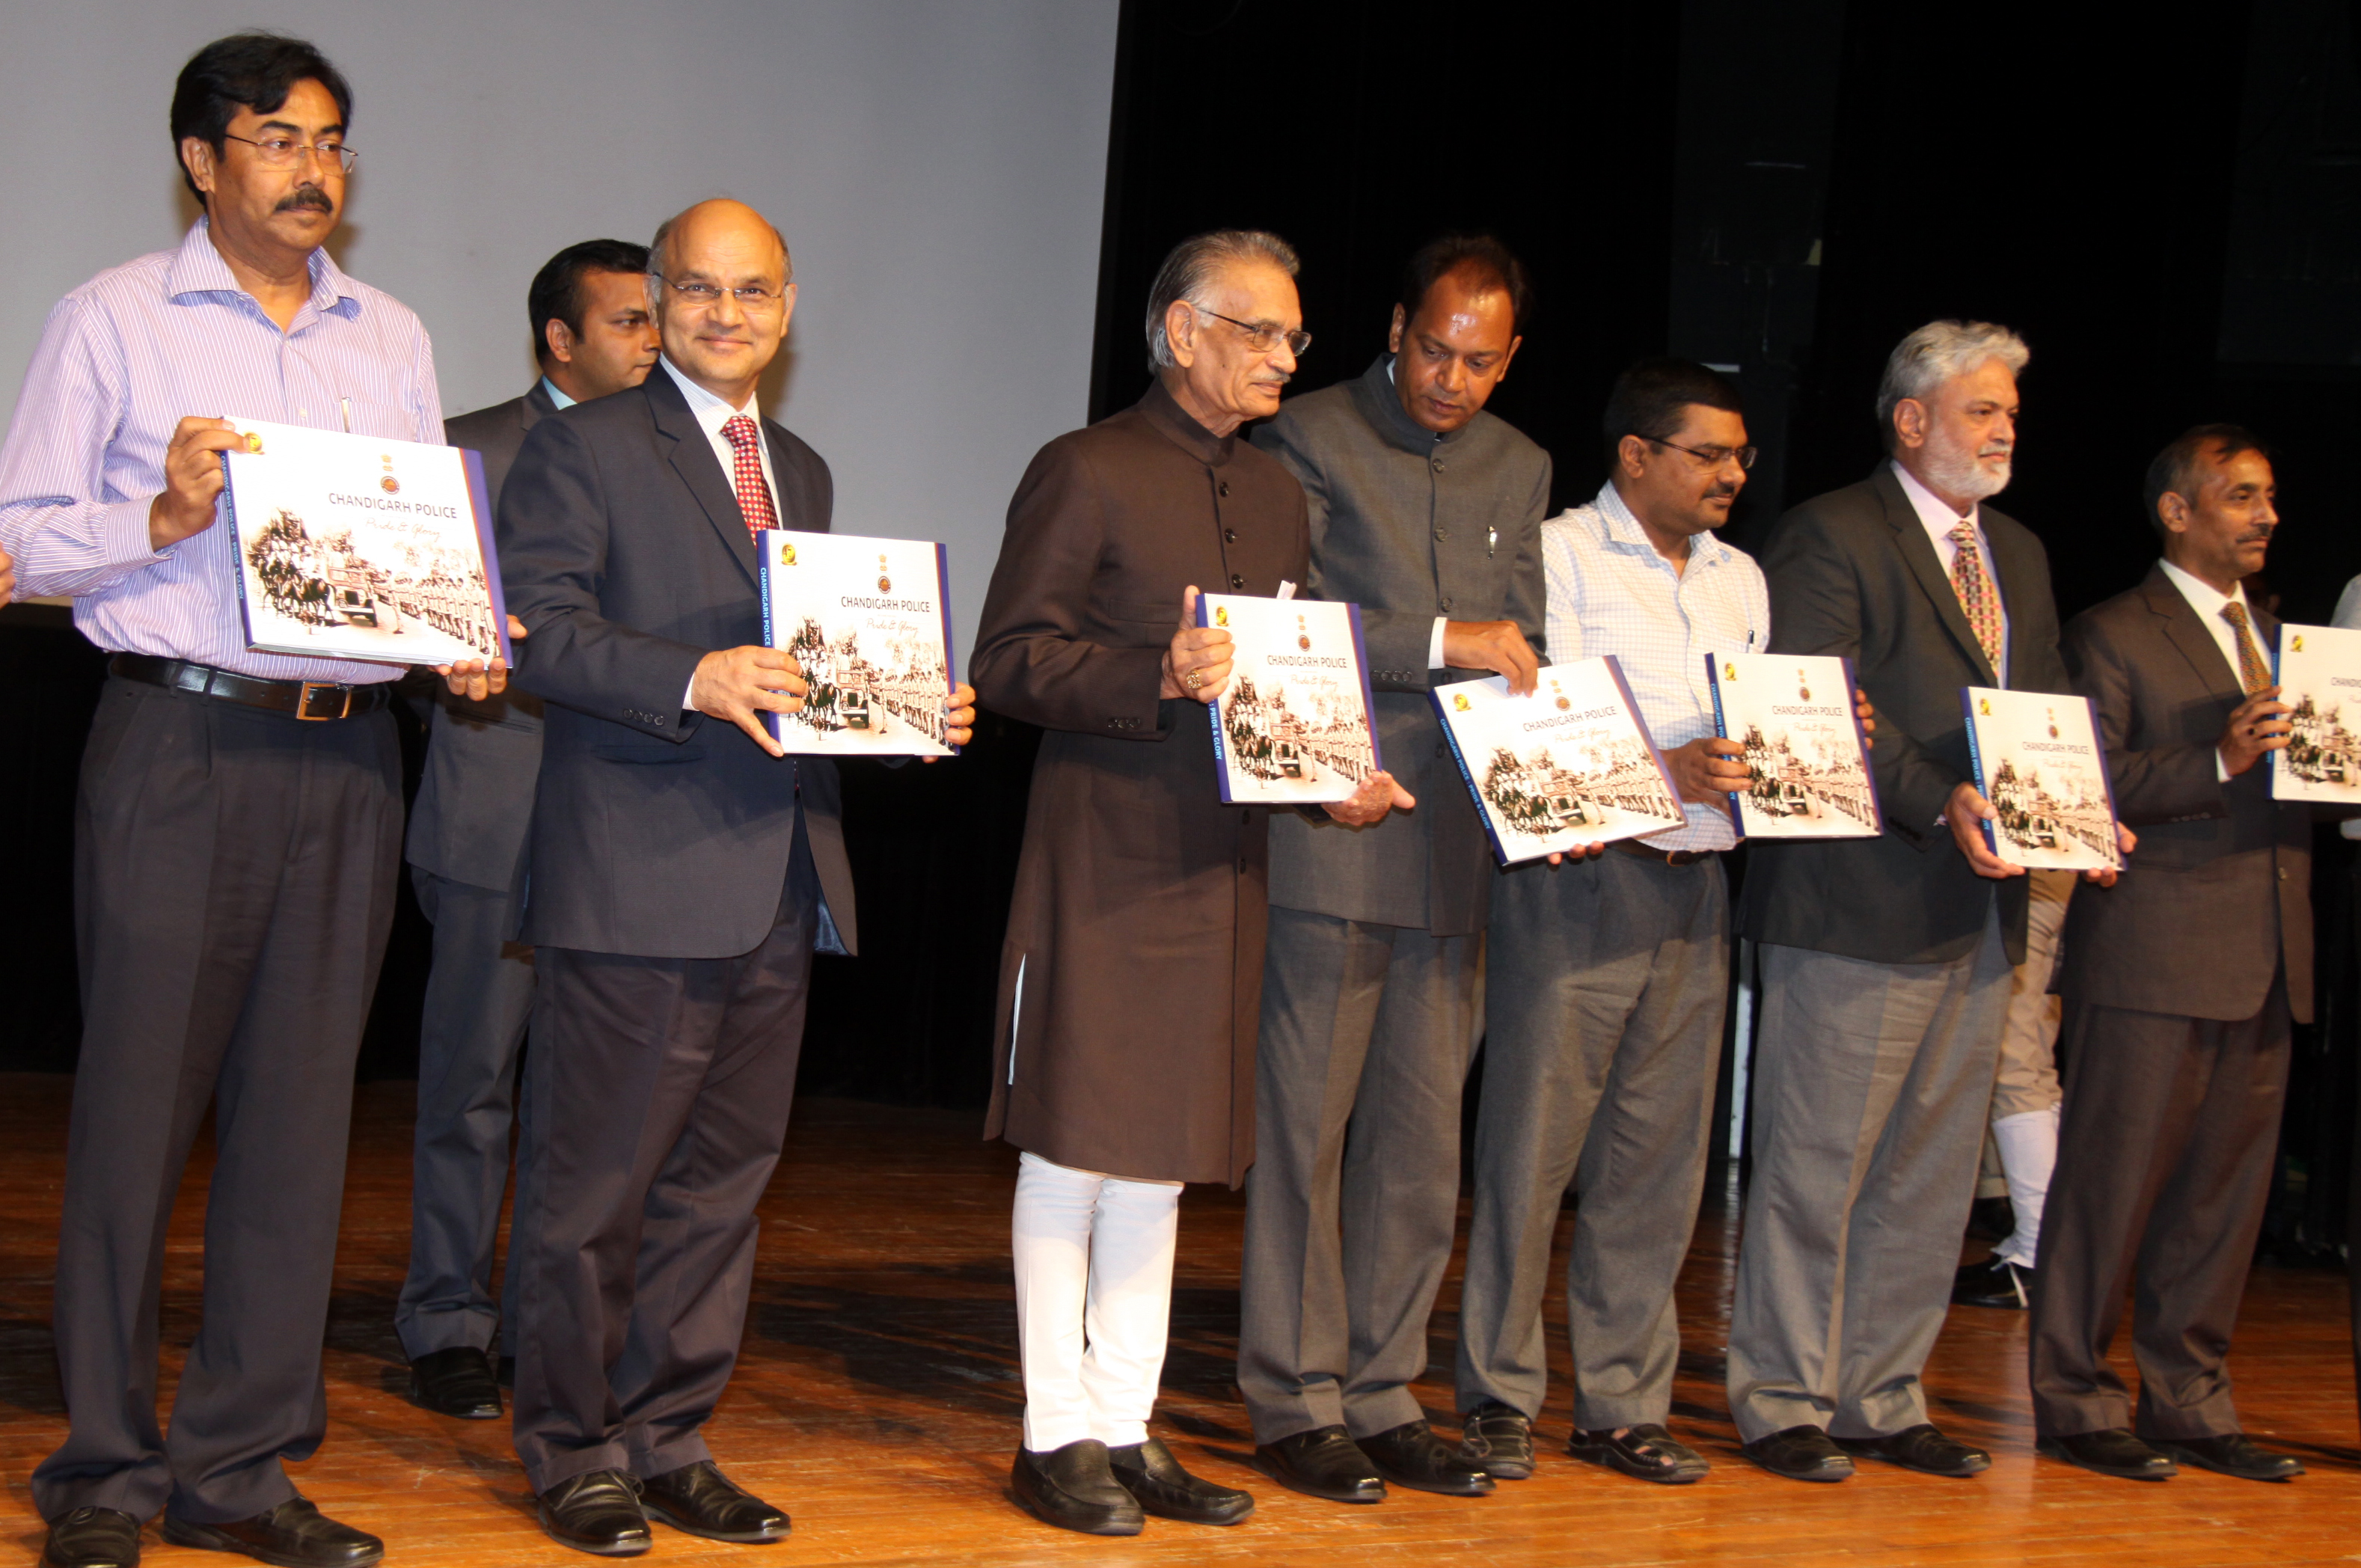 THE PUNJAB GOVERNOR AND ADMINISTRATOR, UT CHANDIGARH, MR SHIVRAJ V. PATIL RELEASING COFFEE TABLE BOOK OF CHANDIGARH POLICE AT TAGORE THEATRE CHANDIGARH ON 02.09.2014. OTHER SENIOR OFFICERS ARE ALSO SEEN IN THE PICTURE.